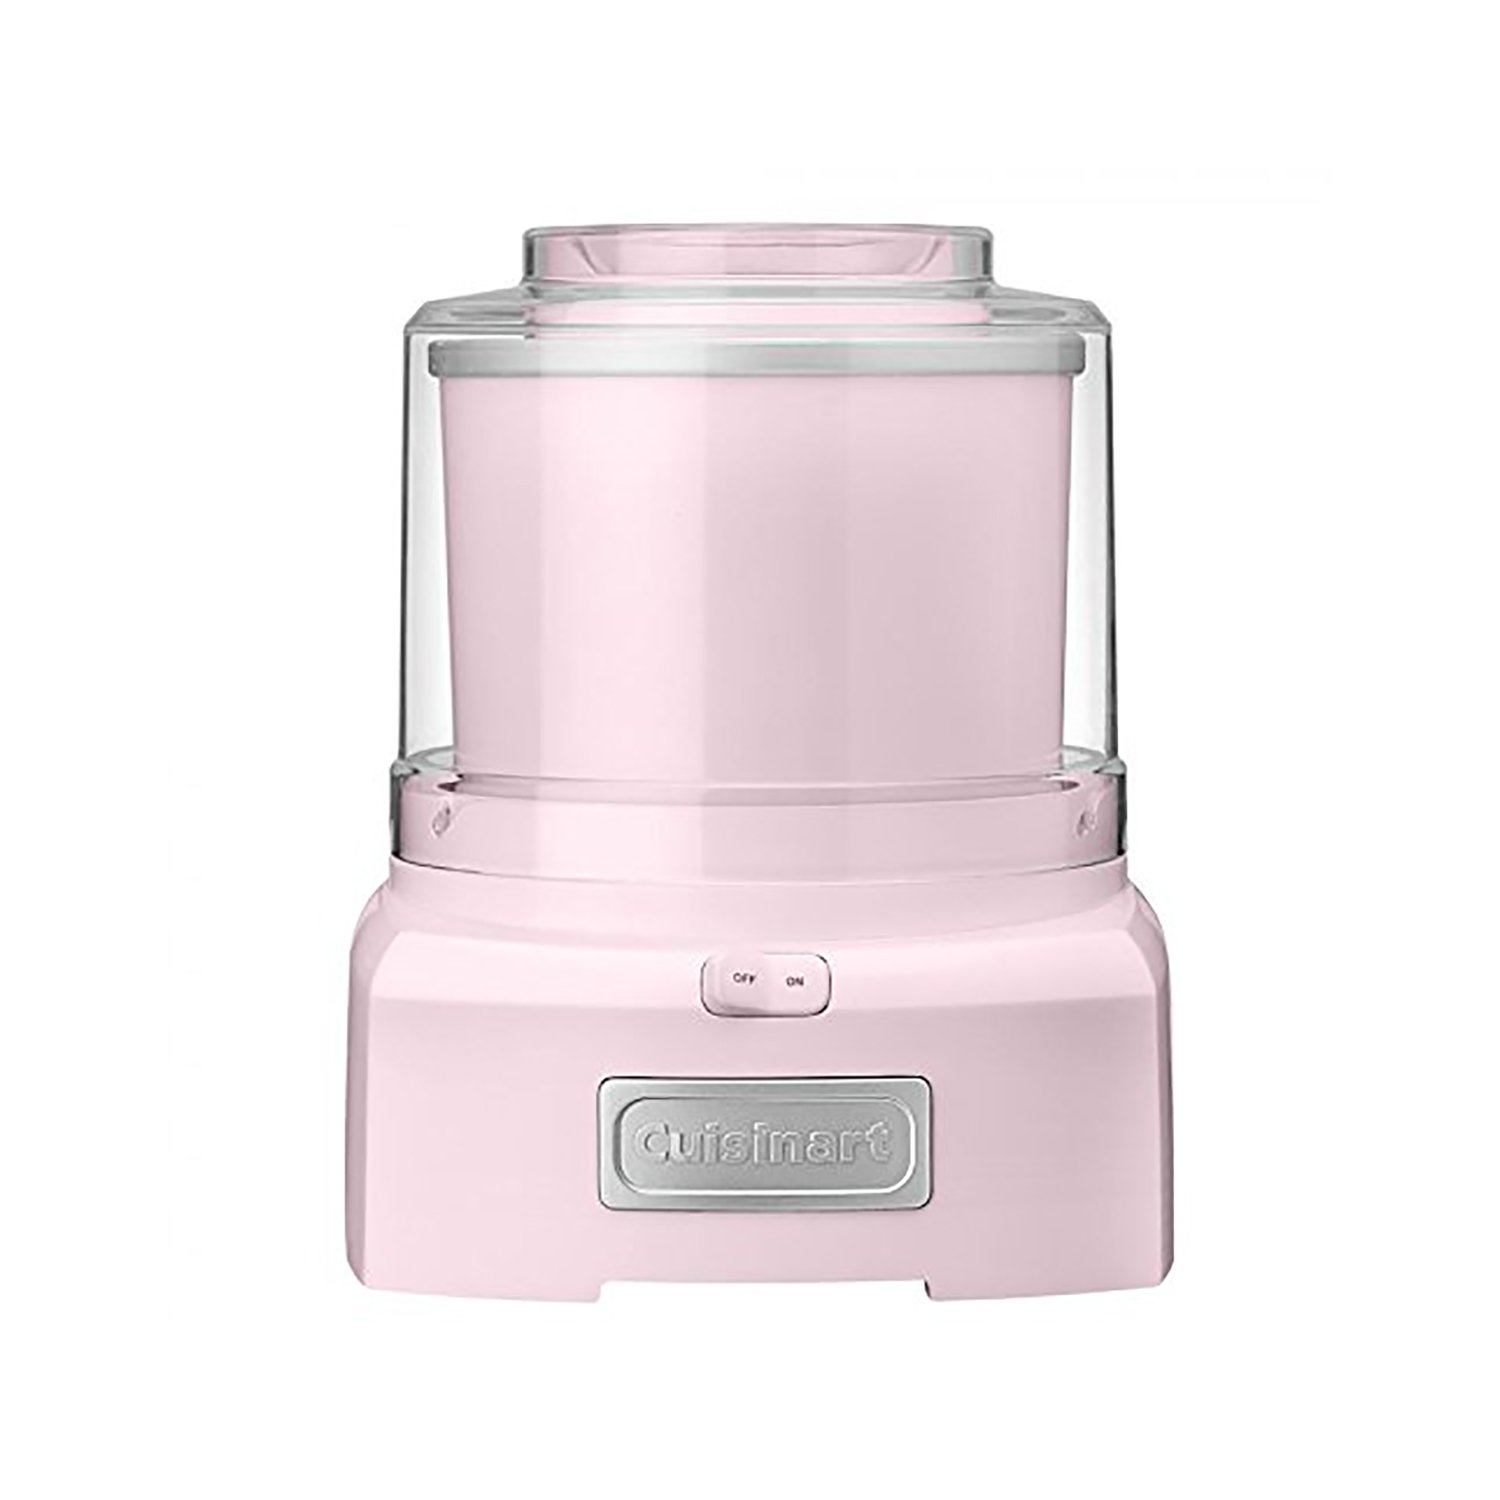 Cuisinart ICE-21PK Frozen Yogurt - Ice Cream & Sorbet Maker, Pink